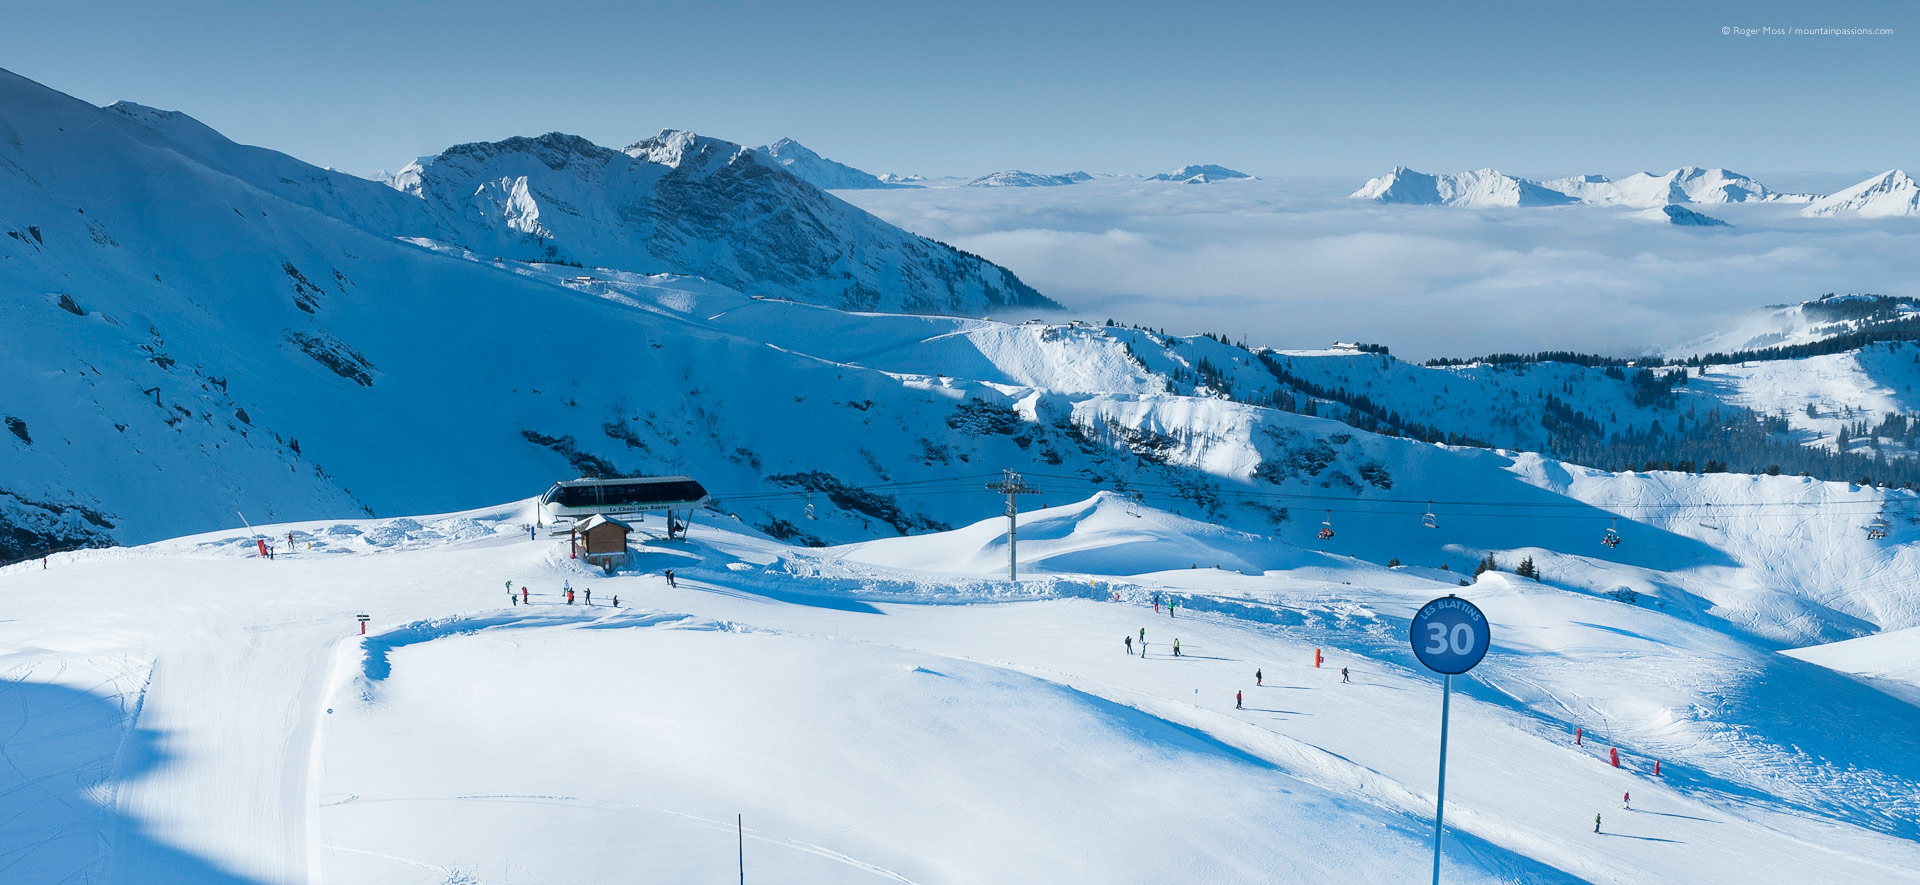 Ch tel ski resort review french alps mountainpassions - Portes du soleil horaires ...